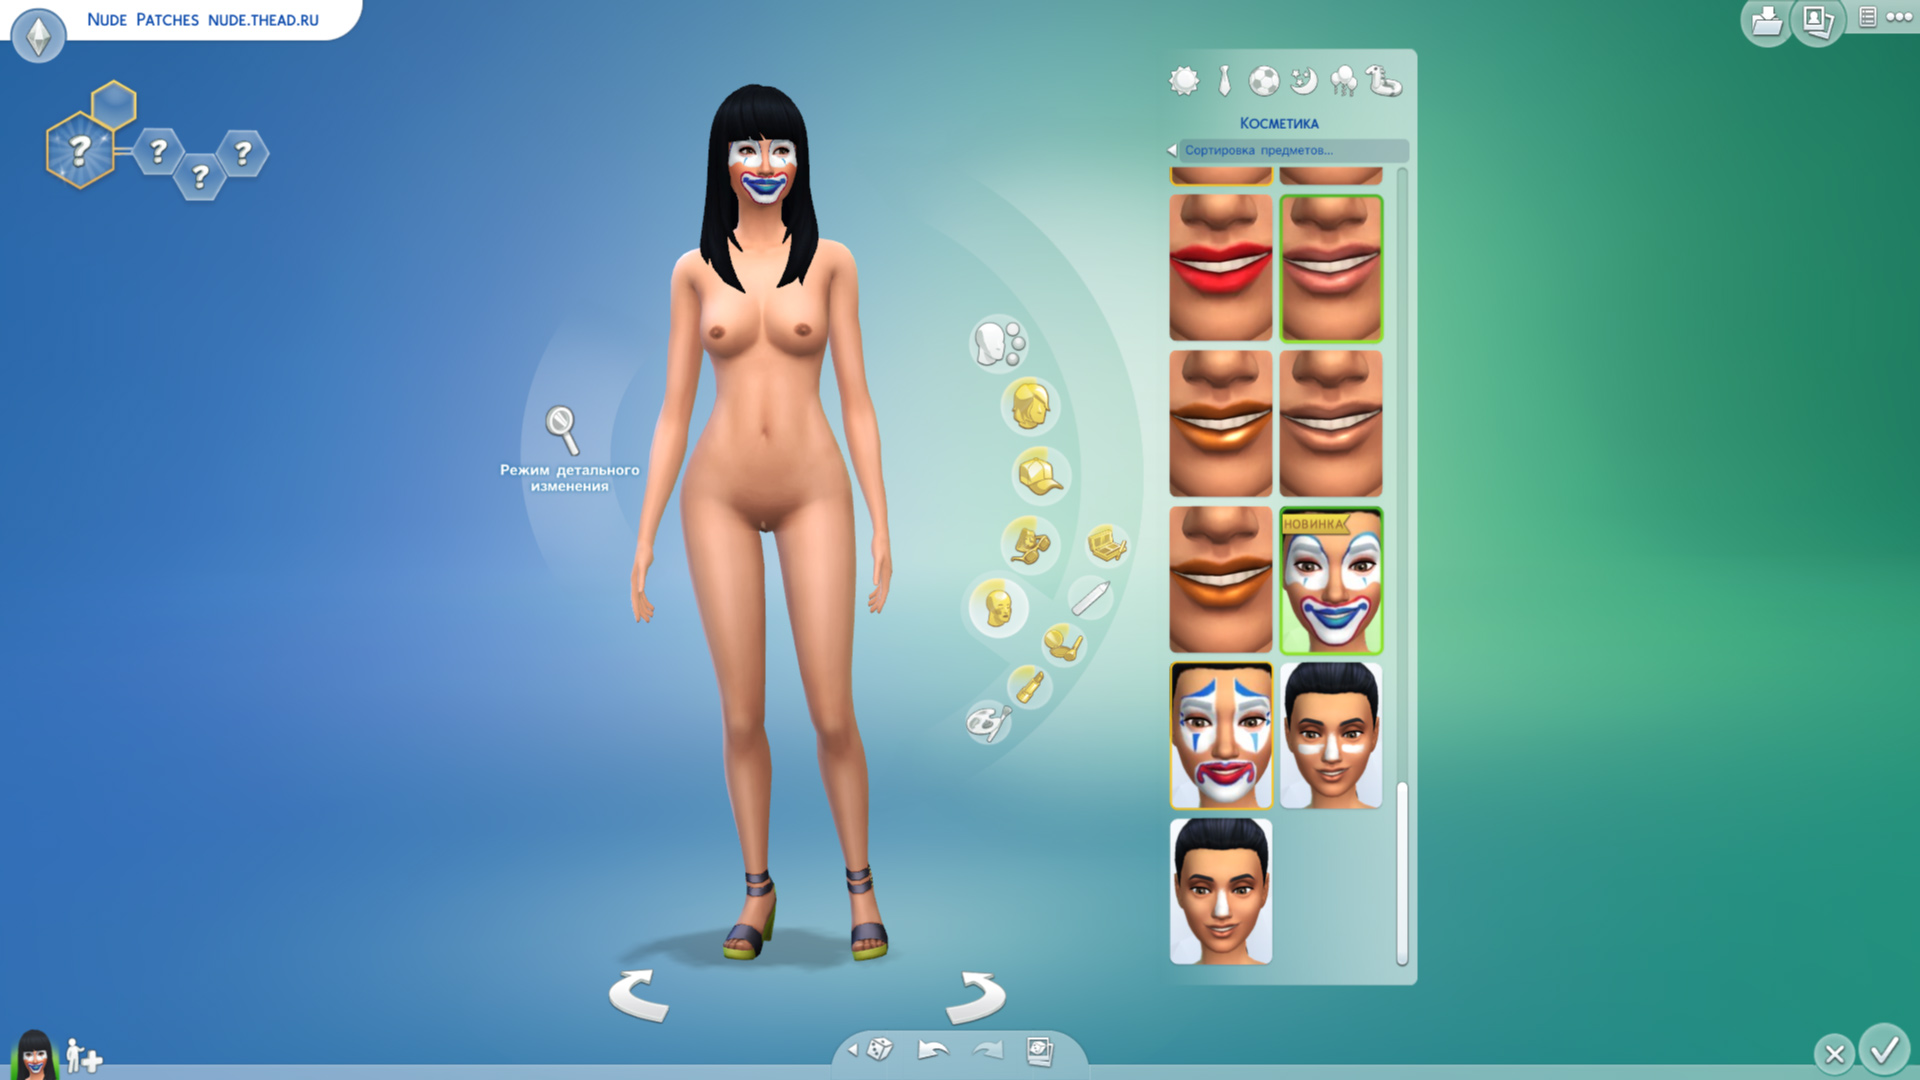 Naked sims in game hentai scene